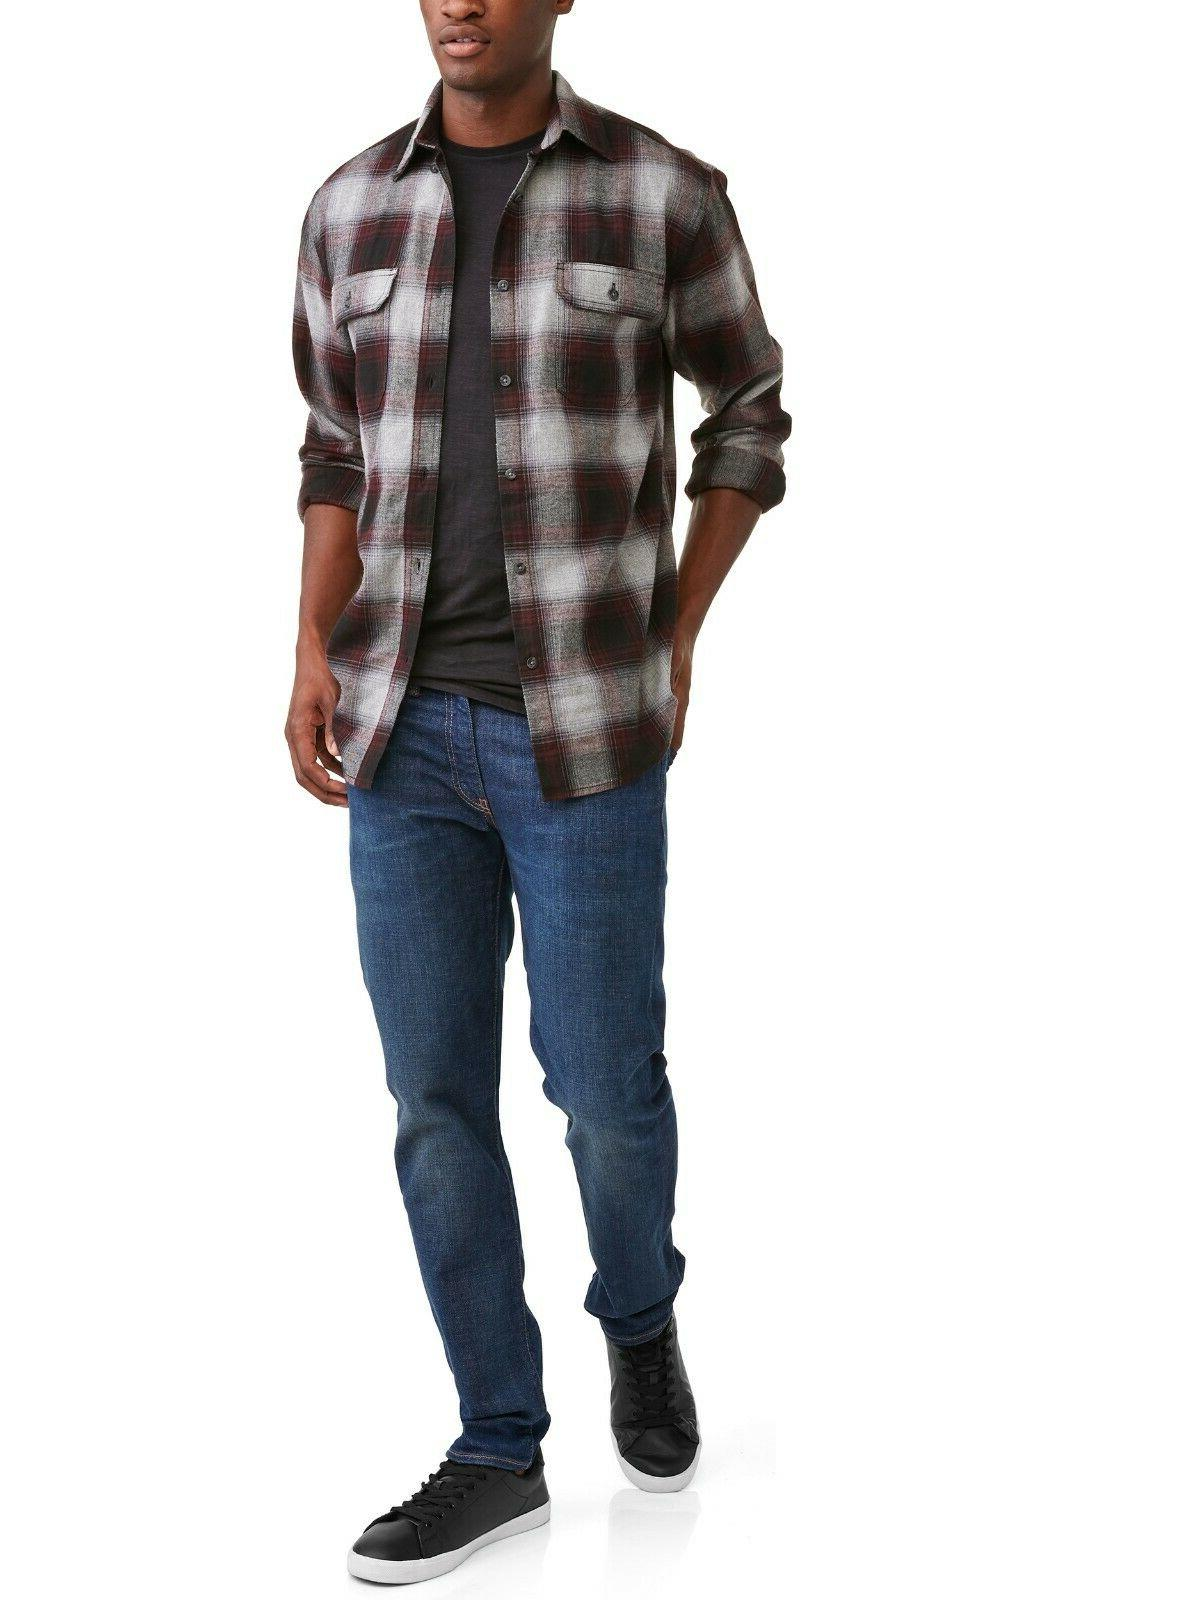 George Flannel Gray/Maroon